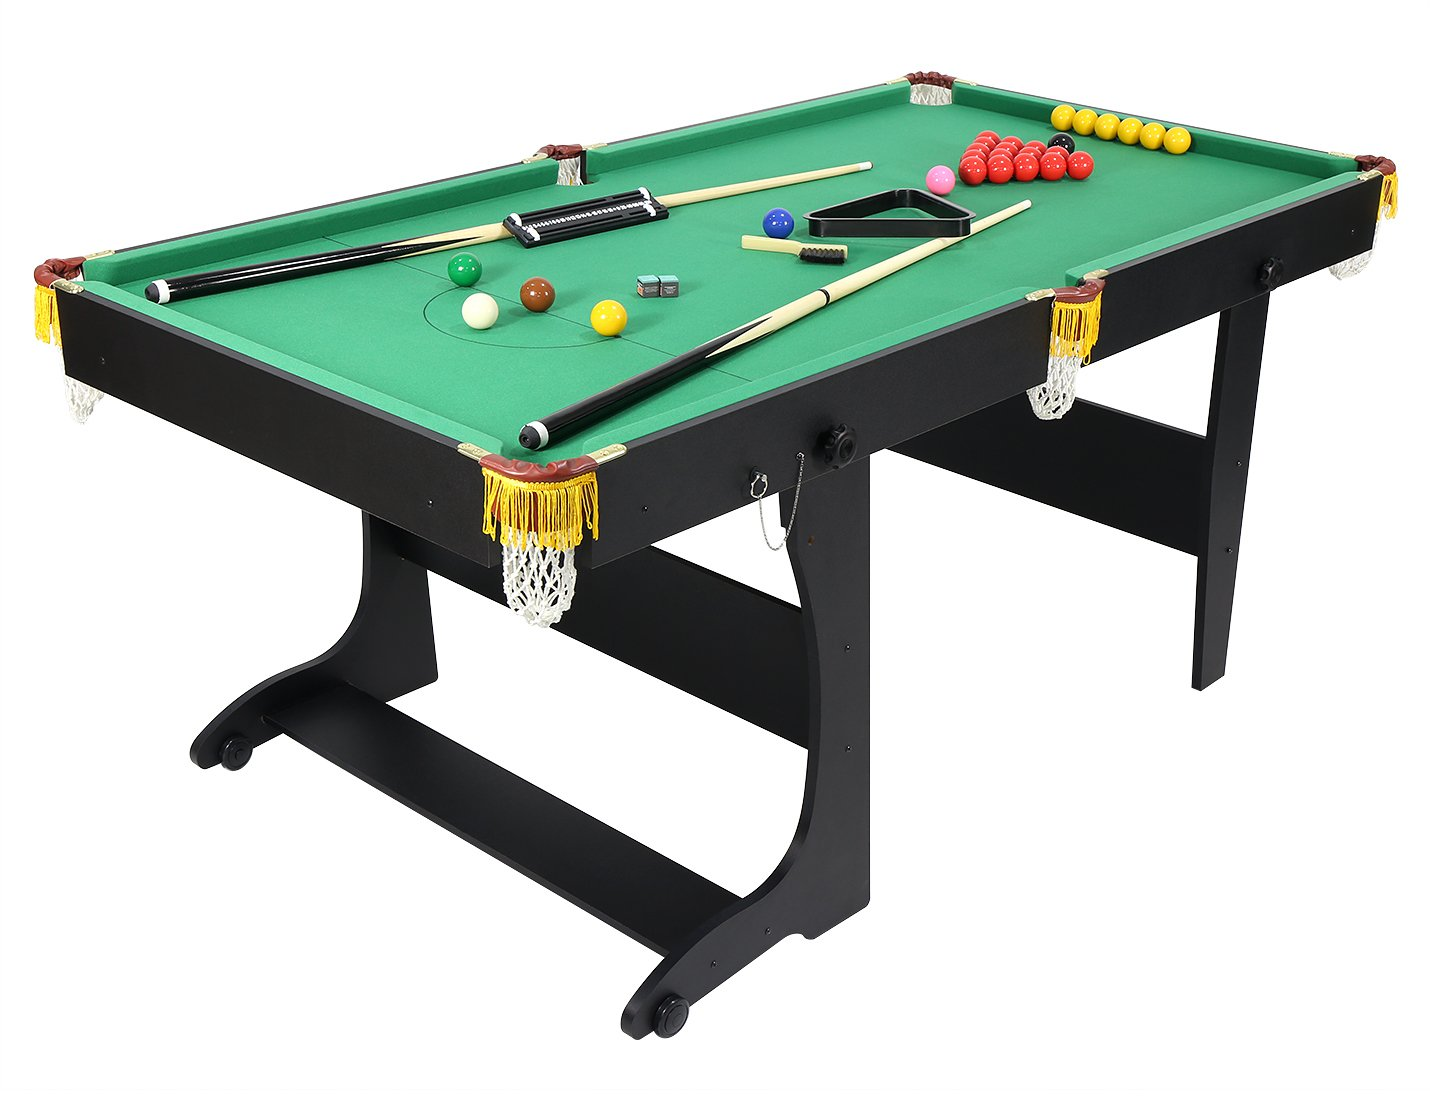 FT In Fold Up Snooker TablePool Table Game Table With Balls - Pool table description